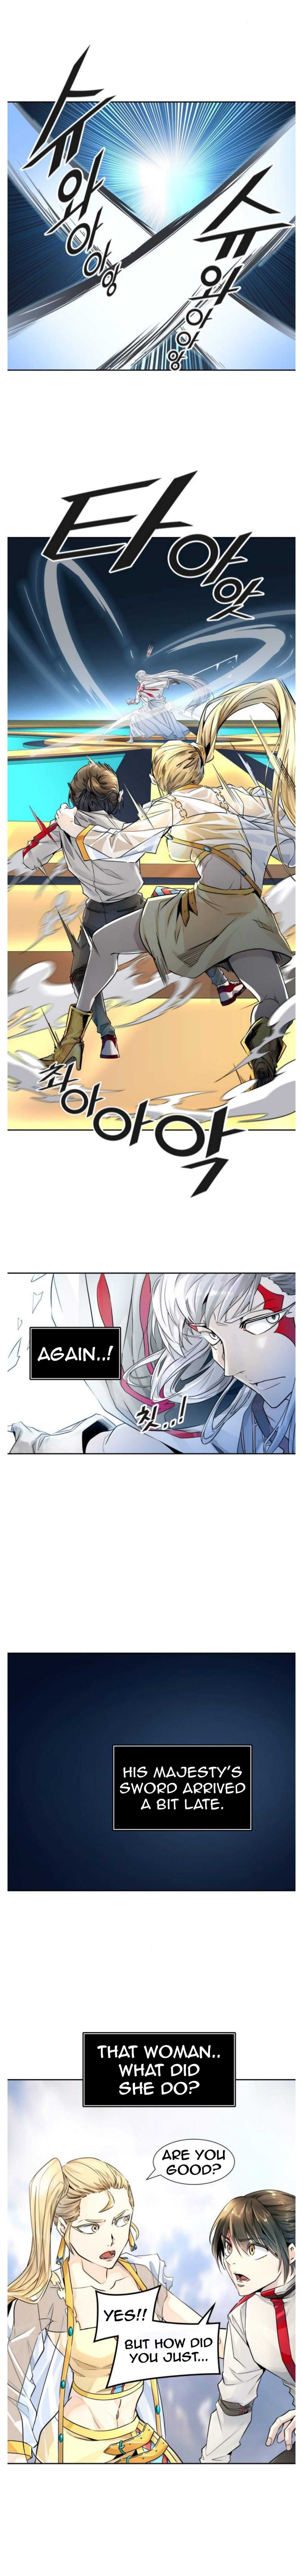 tower of god: Chapter 498 - Page 7